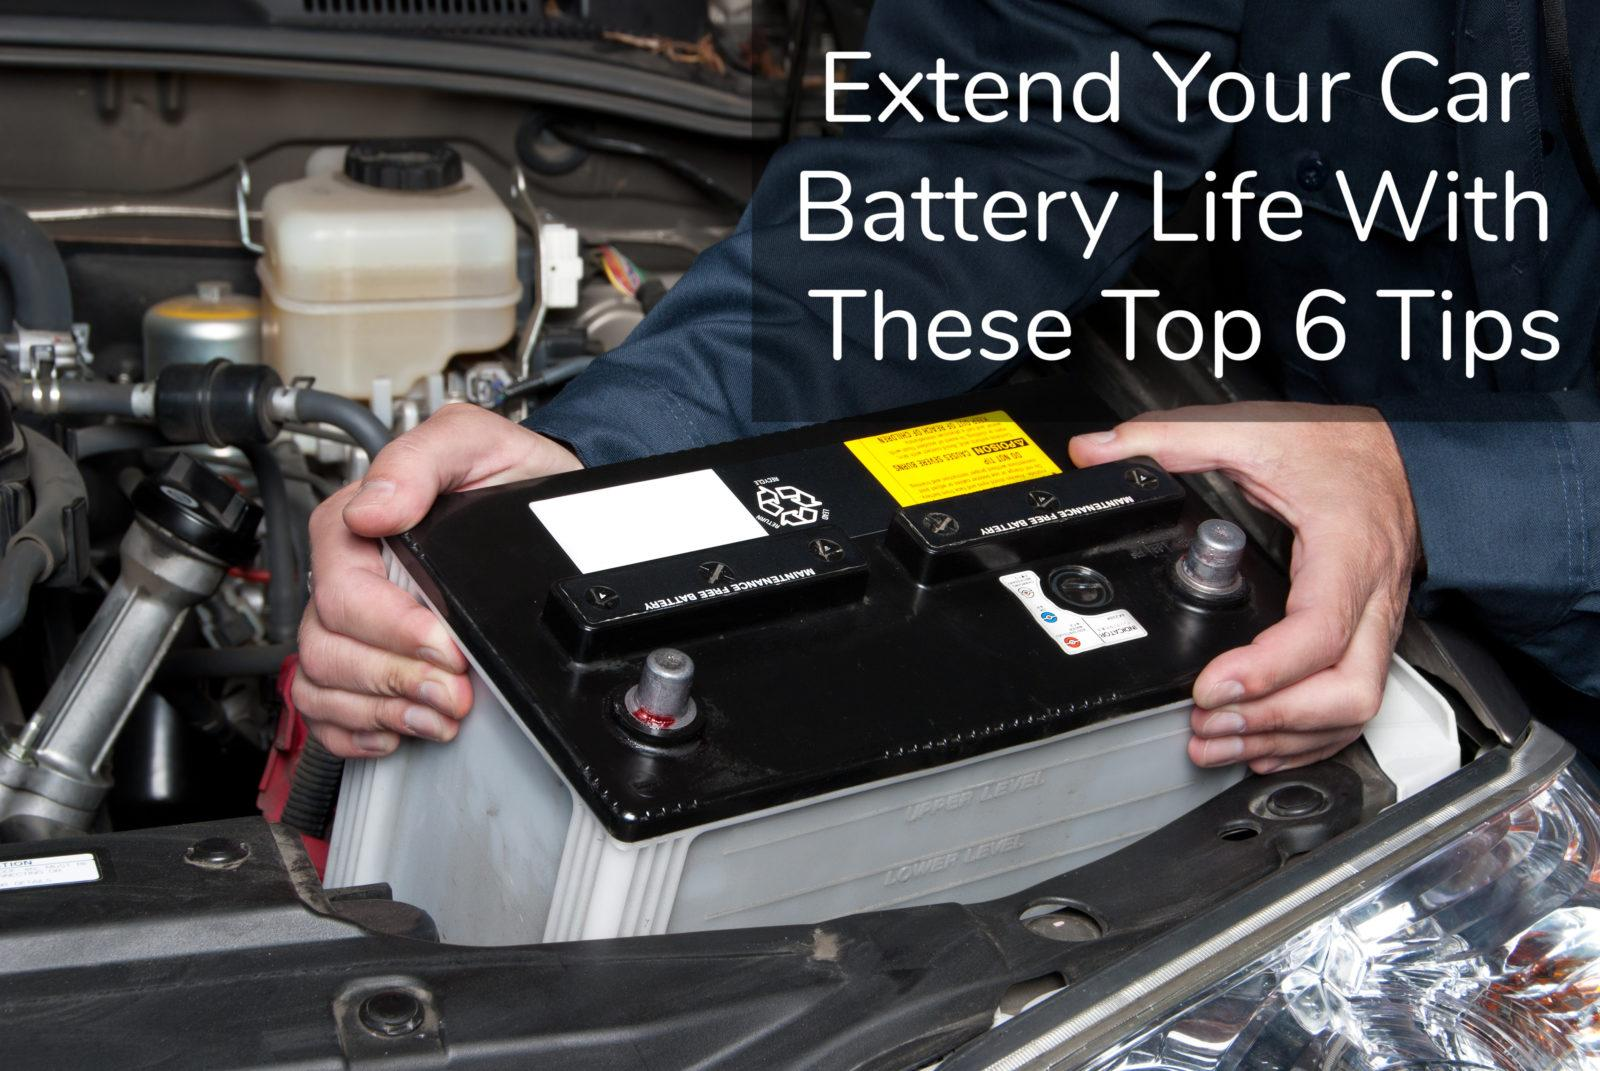 extend your car battery life with these top 6 tips